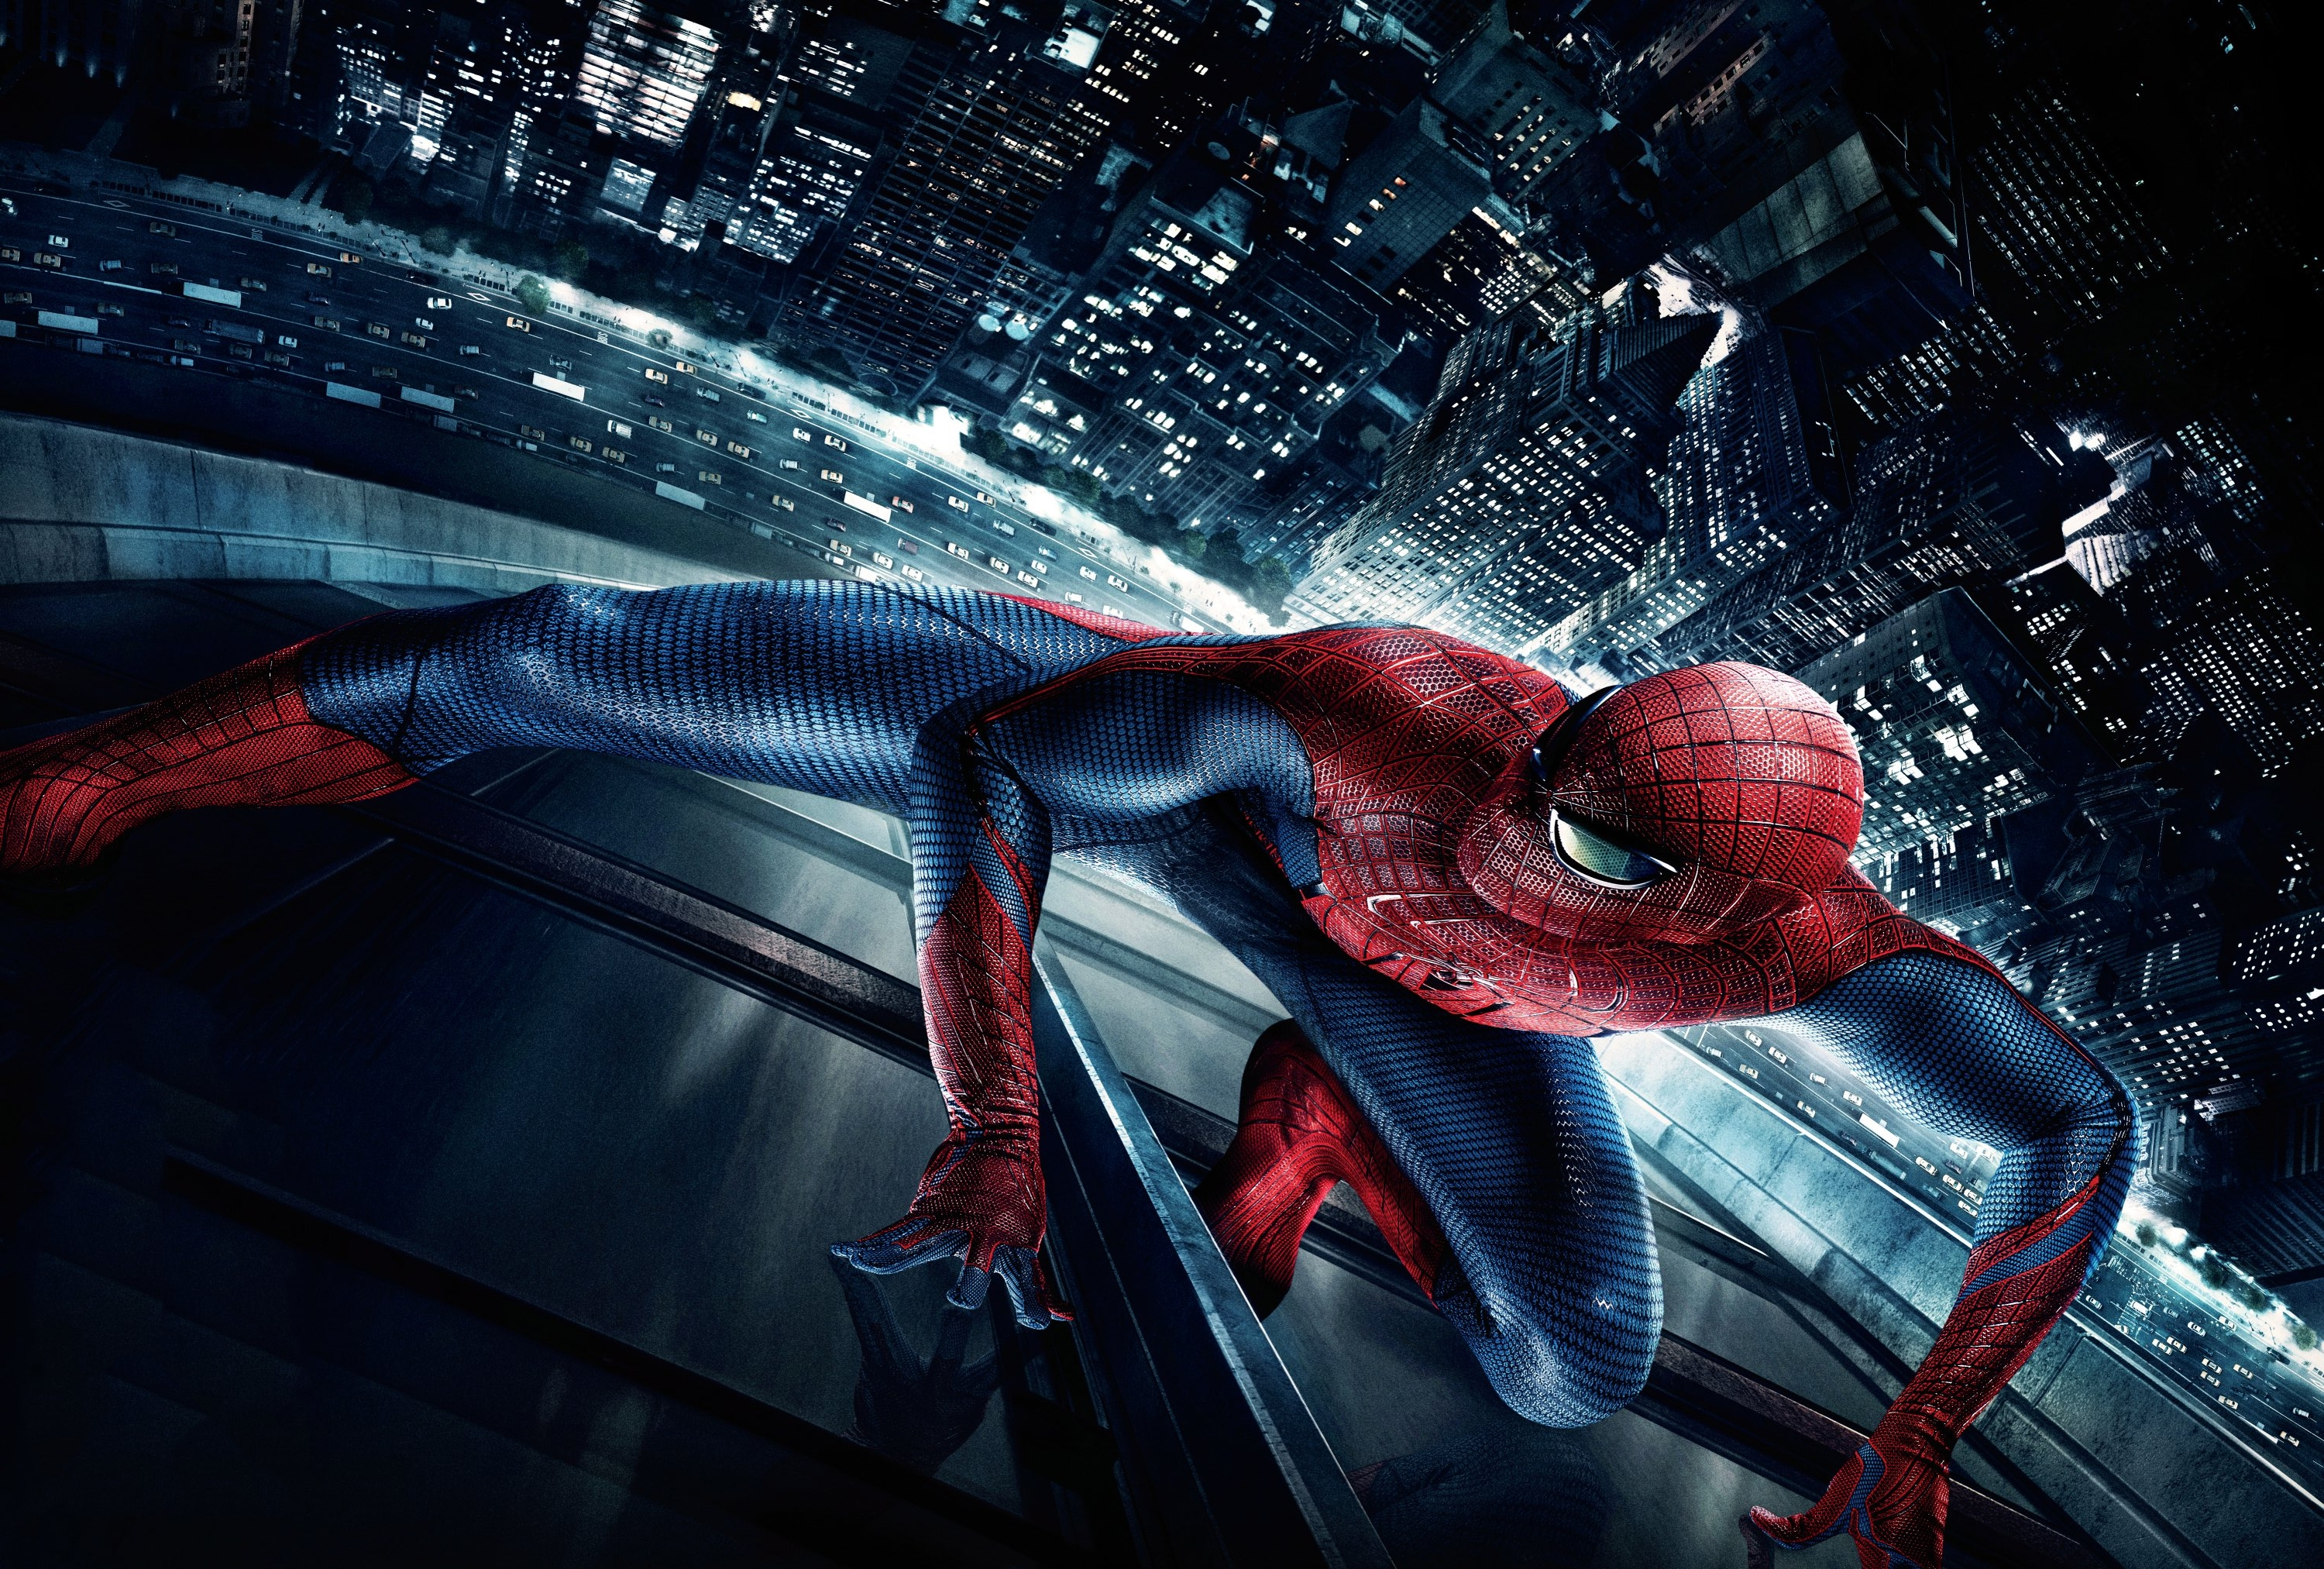 ultimate spider man crawling building adventures hd